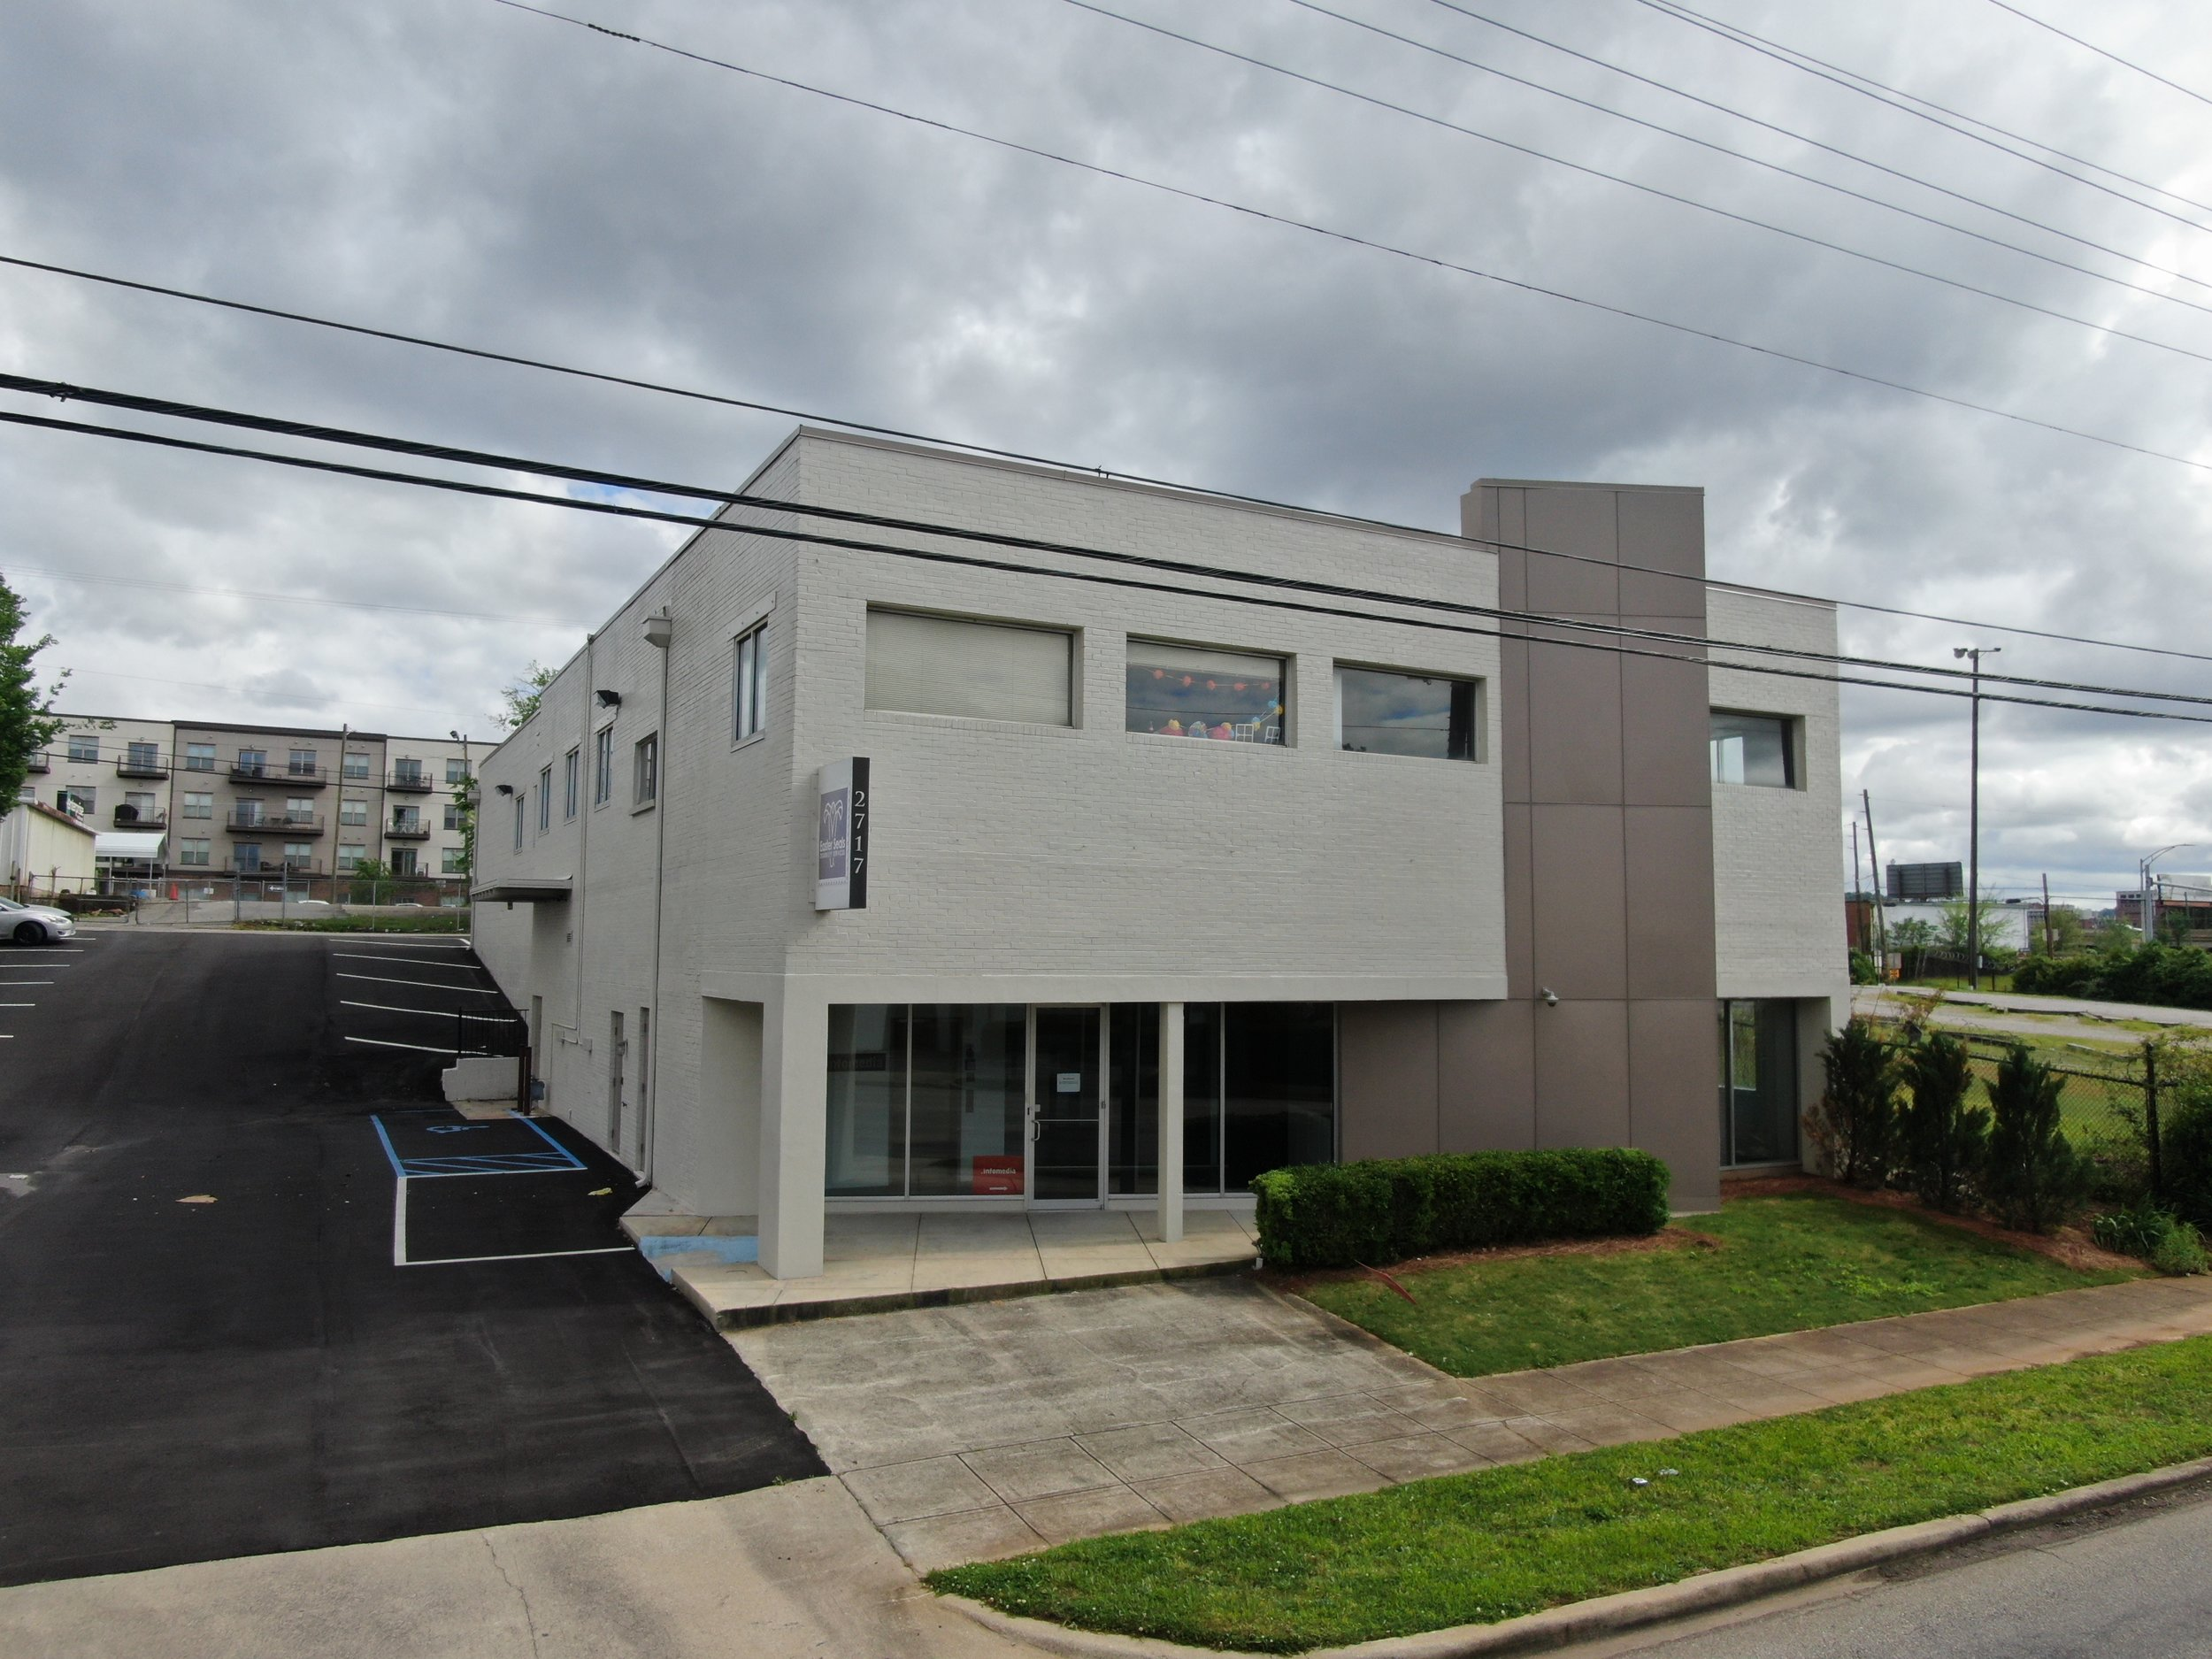 Infomedia has relocated from Vestavia Hills to its new location at 2717 Third Avenue South.